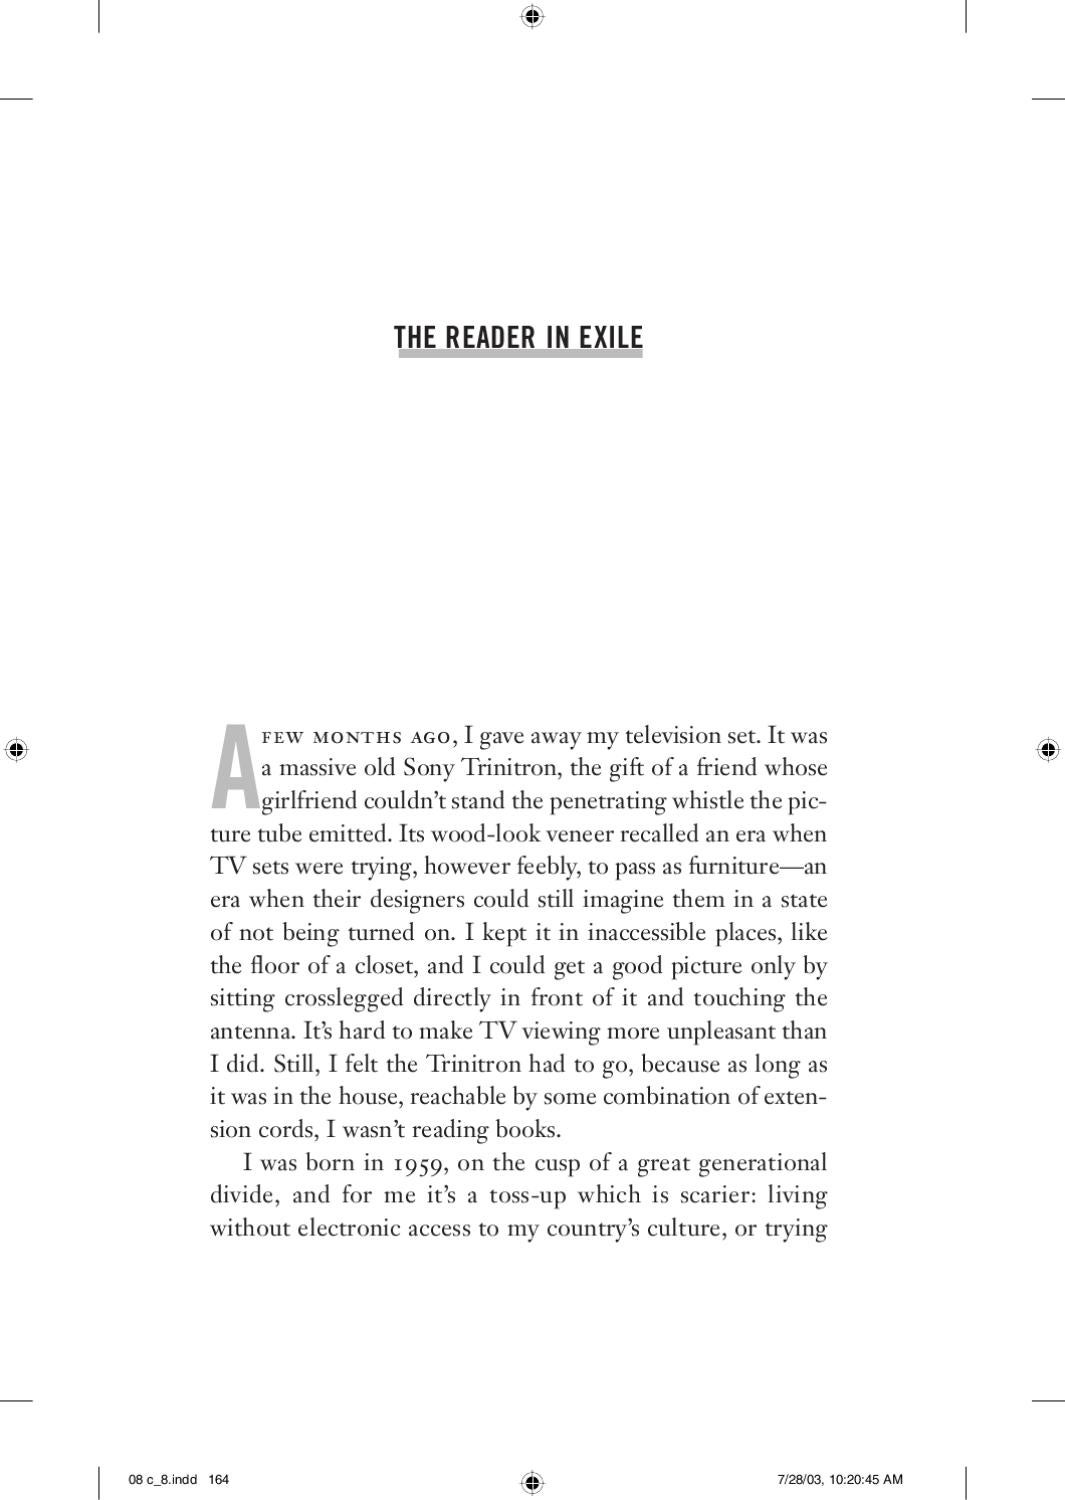 the reader in exile an essay from how to be alone by sam shone the reader in exile an essay from how to be alone by sam shone issuu